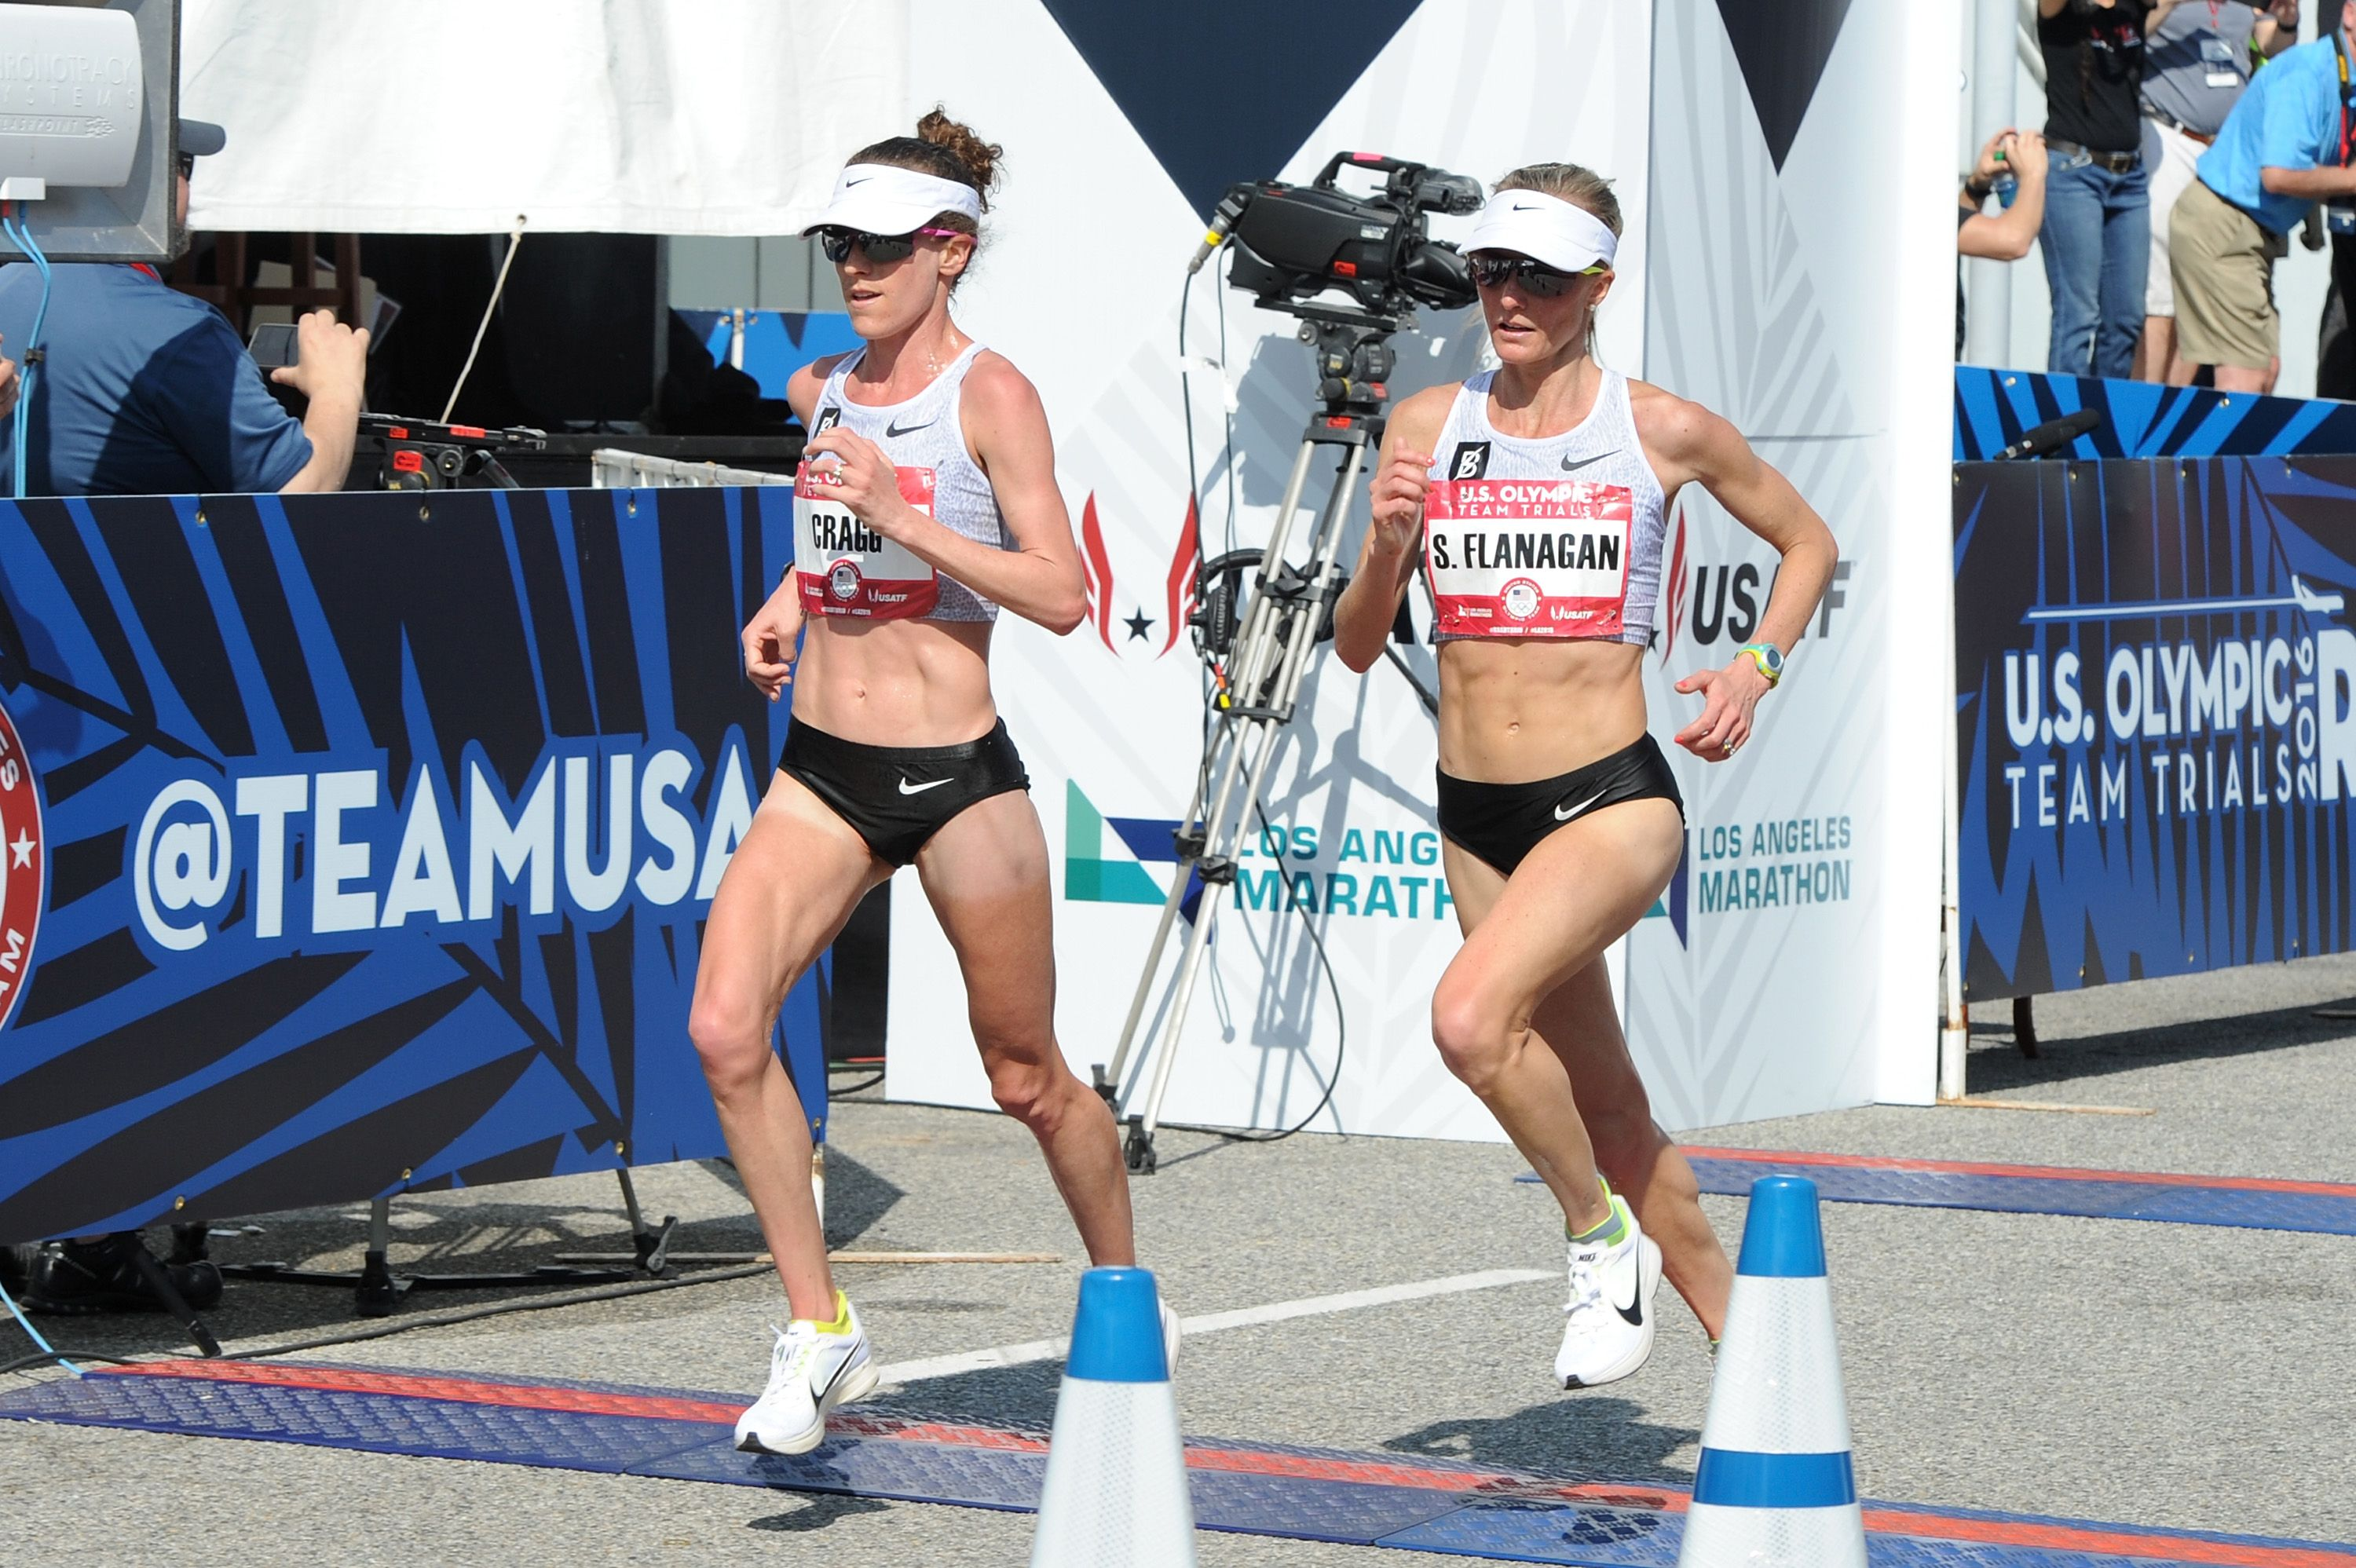 The Best Moments at the Olympic Marathon Trials